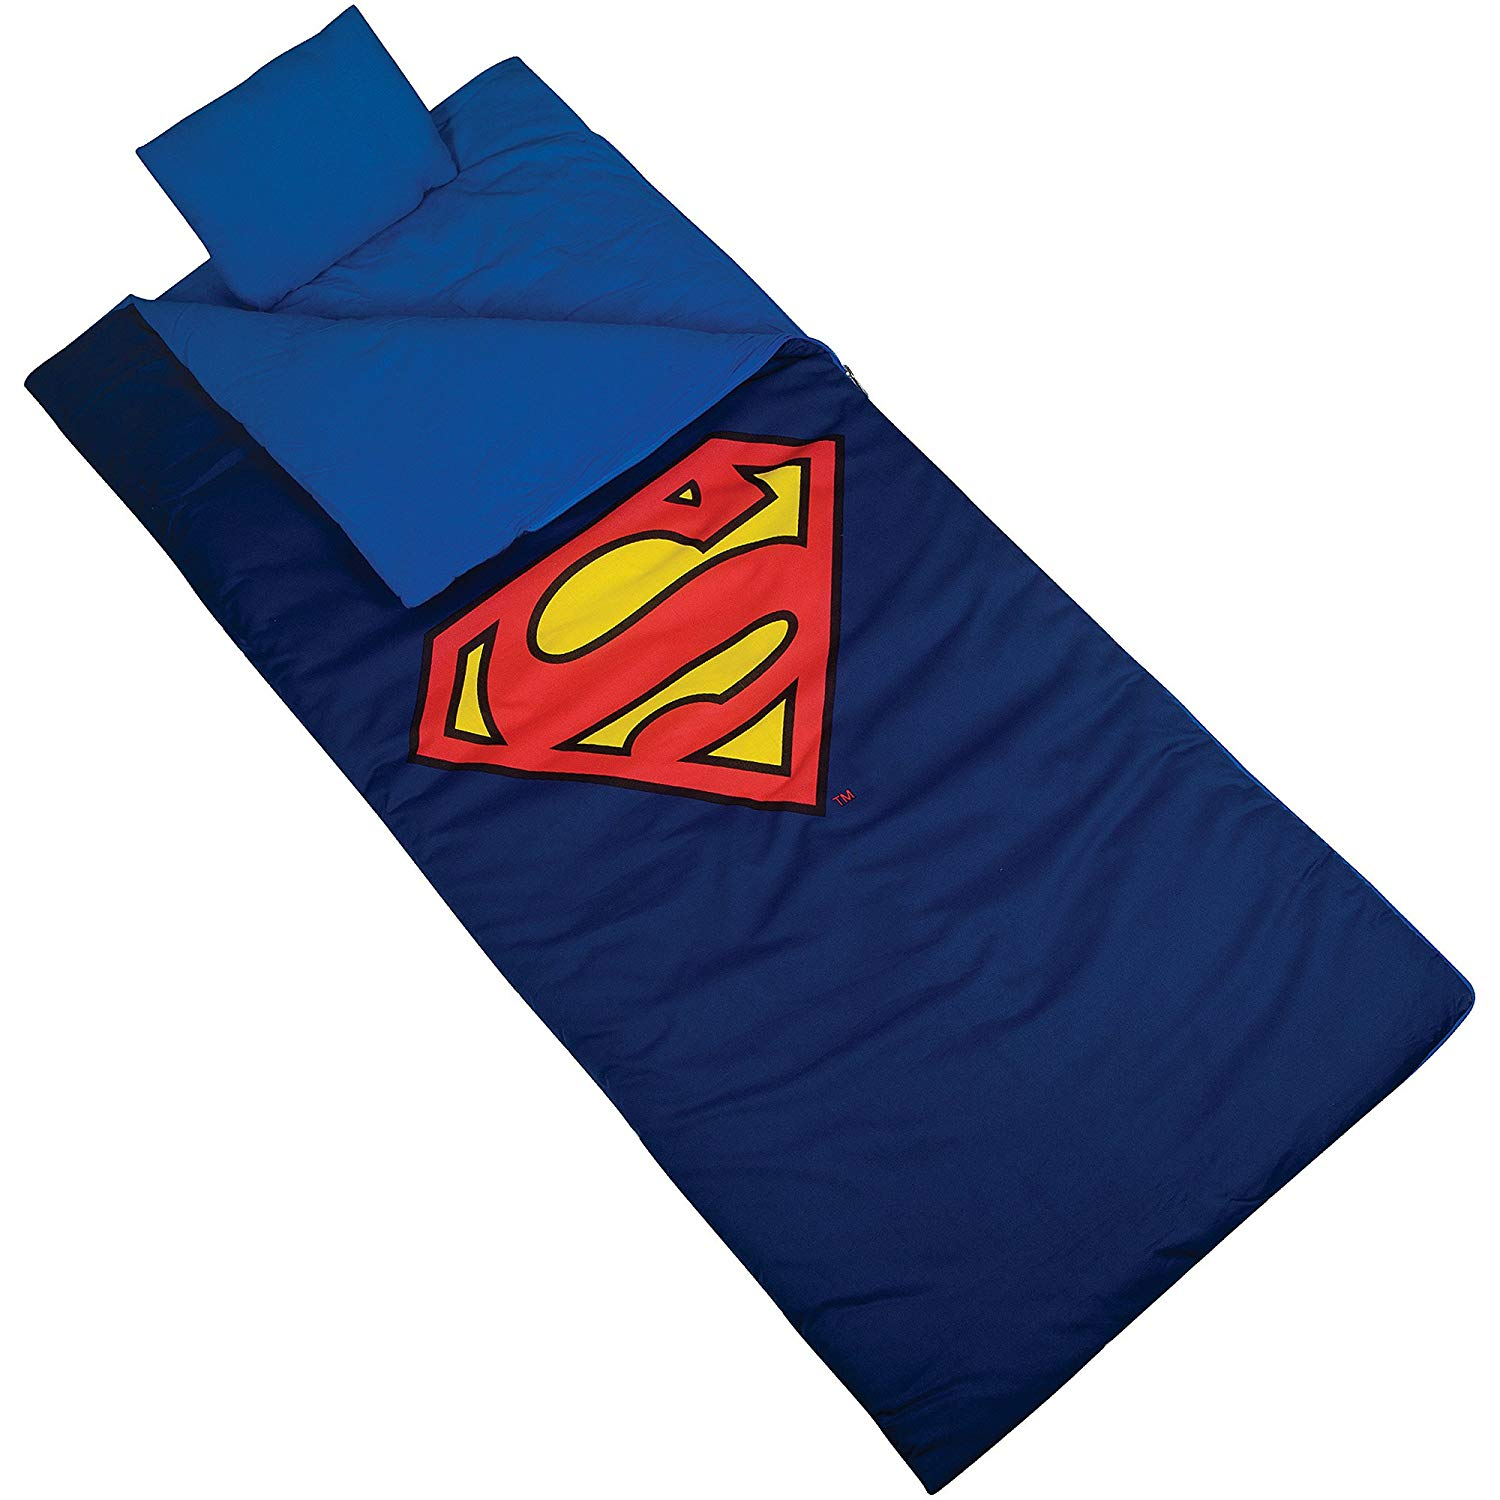 TL 2 Piece Kids Boys Blue Superman Themed Sleeping Bag, Classic Modern Super Hero Theme Outdoor Recreation Sleep Sack Blanket, Super Man Shield Red Yellow Light Travel Bedding Roll, Cotton